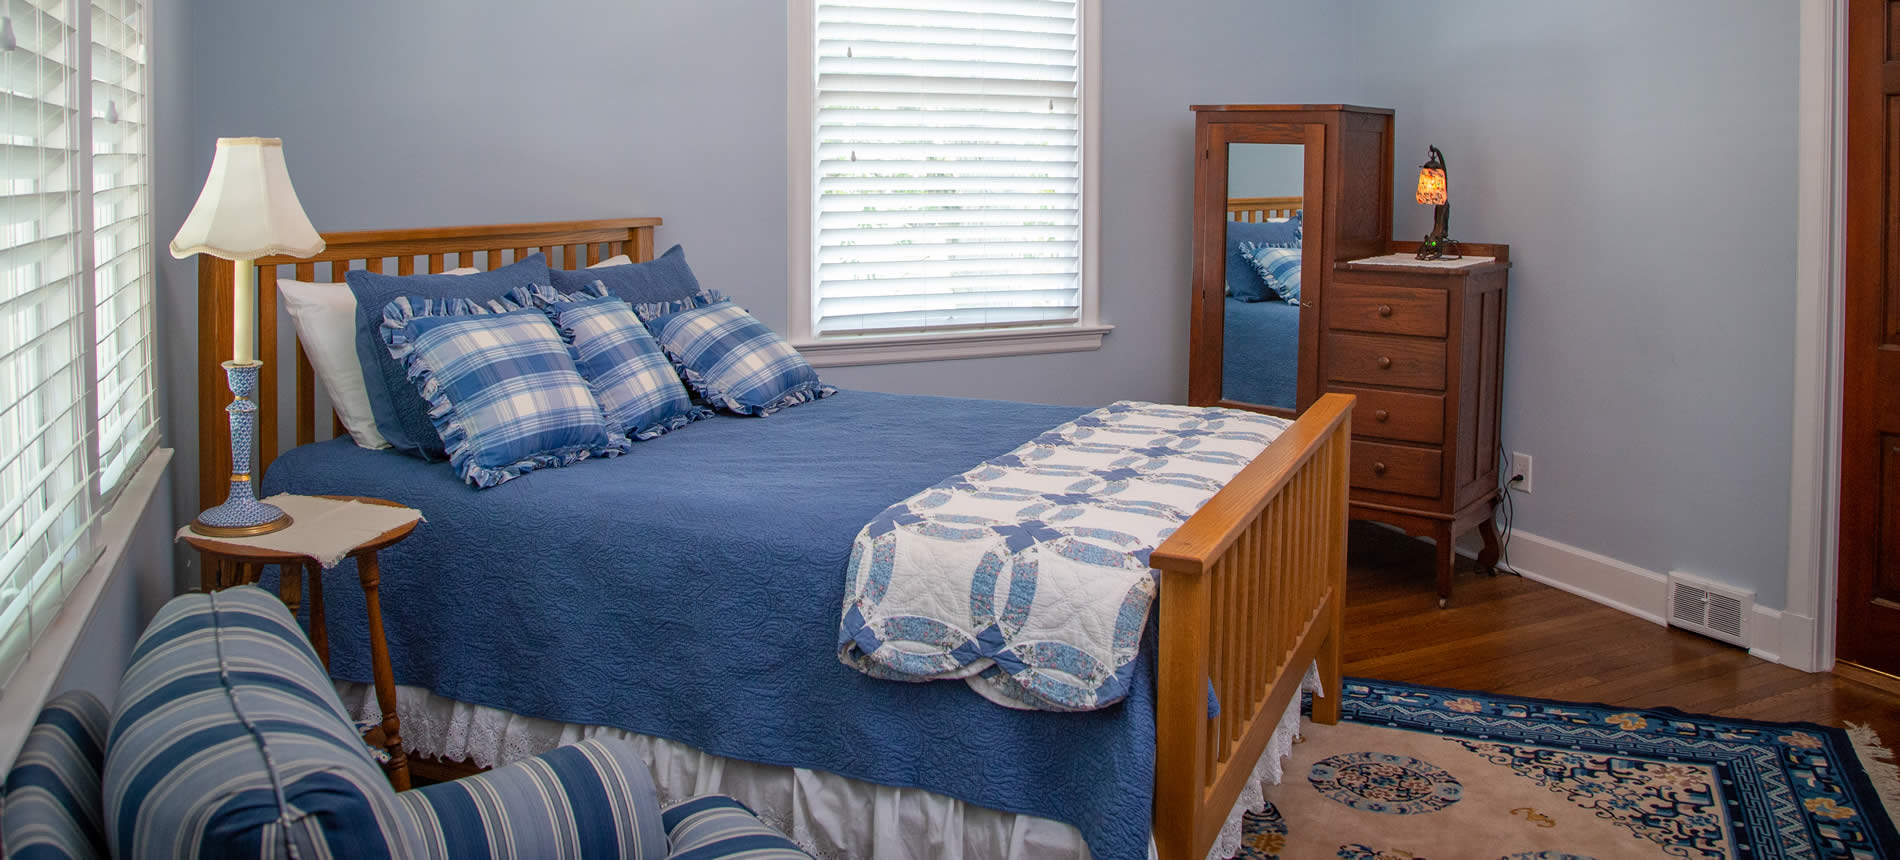 valpo inn guestroom with bed, blue bedspread, table with lamp